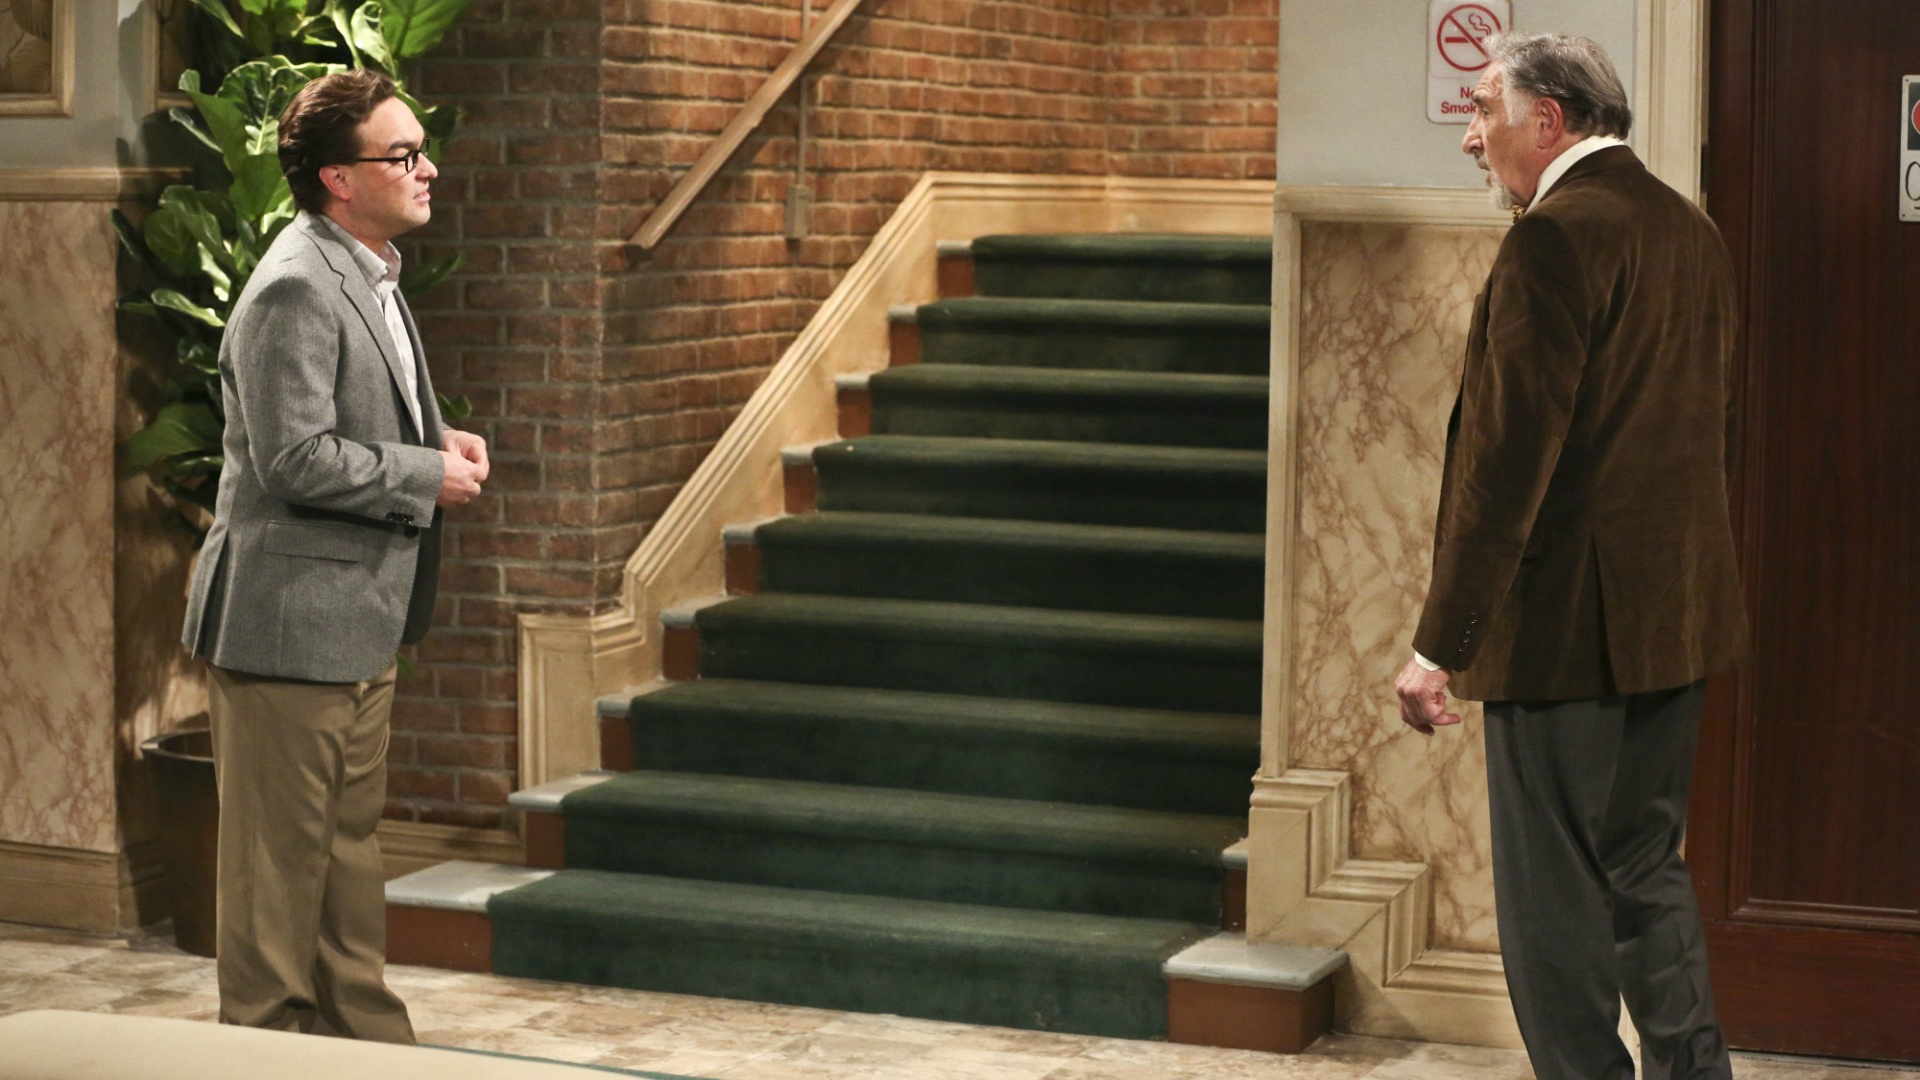 Leonard ushers his father, Alfred, upstairs.